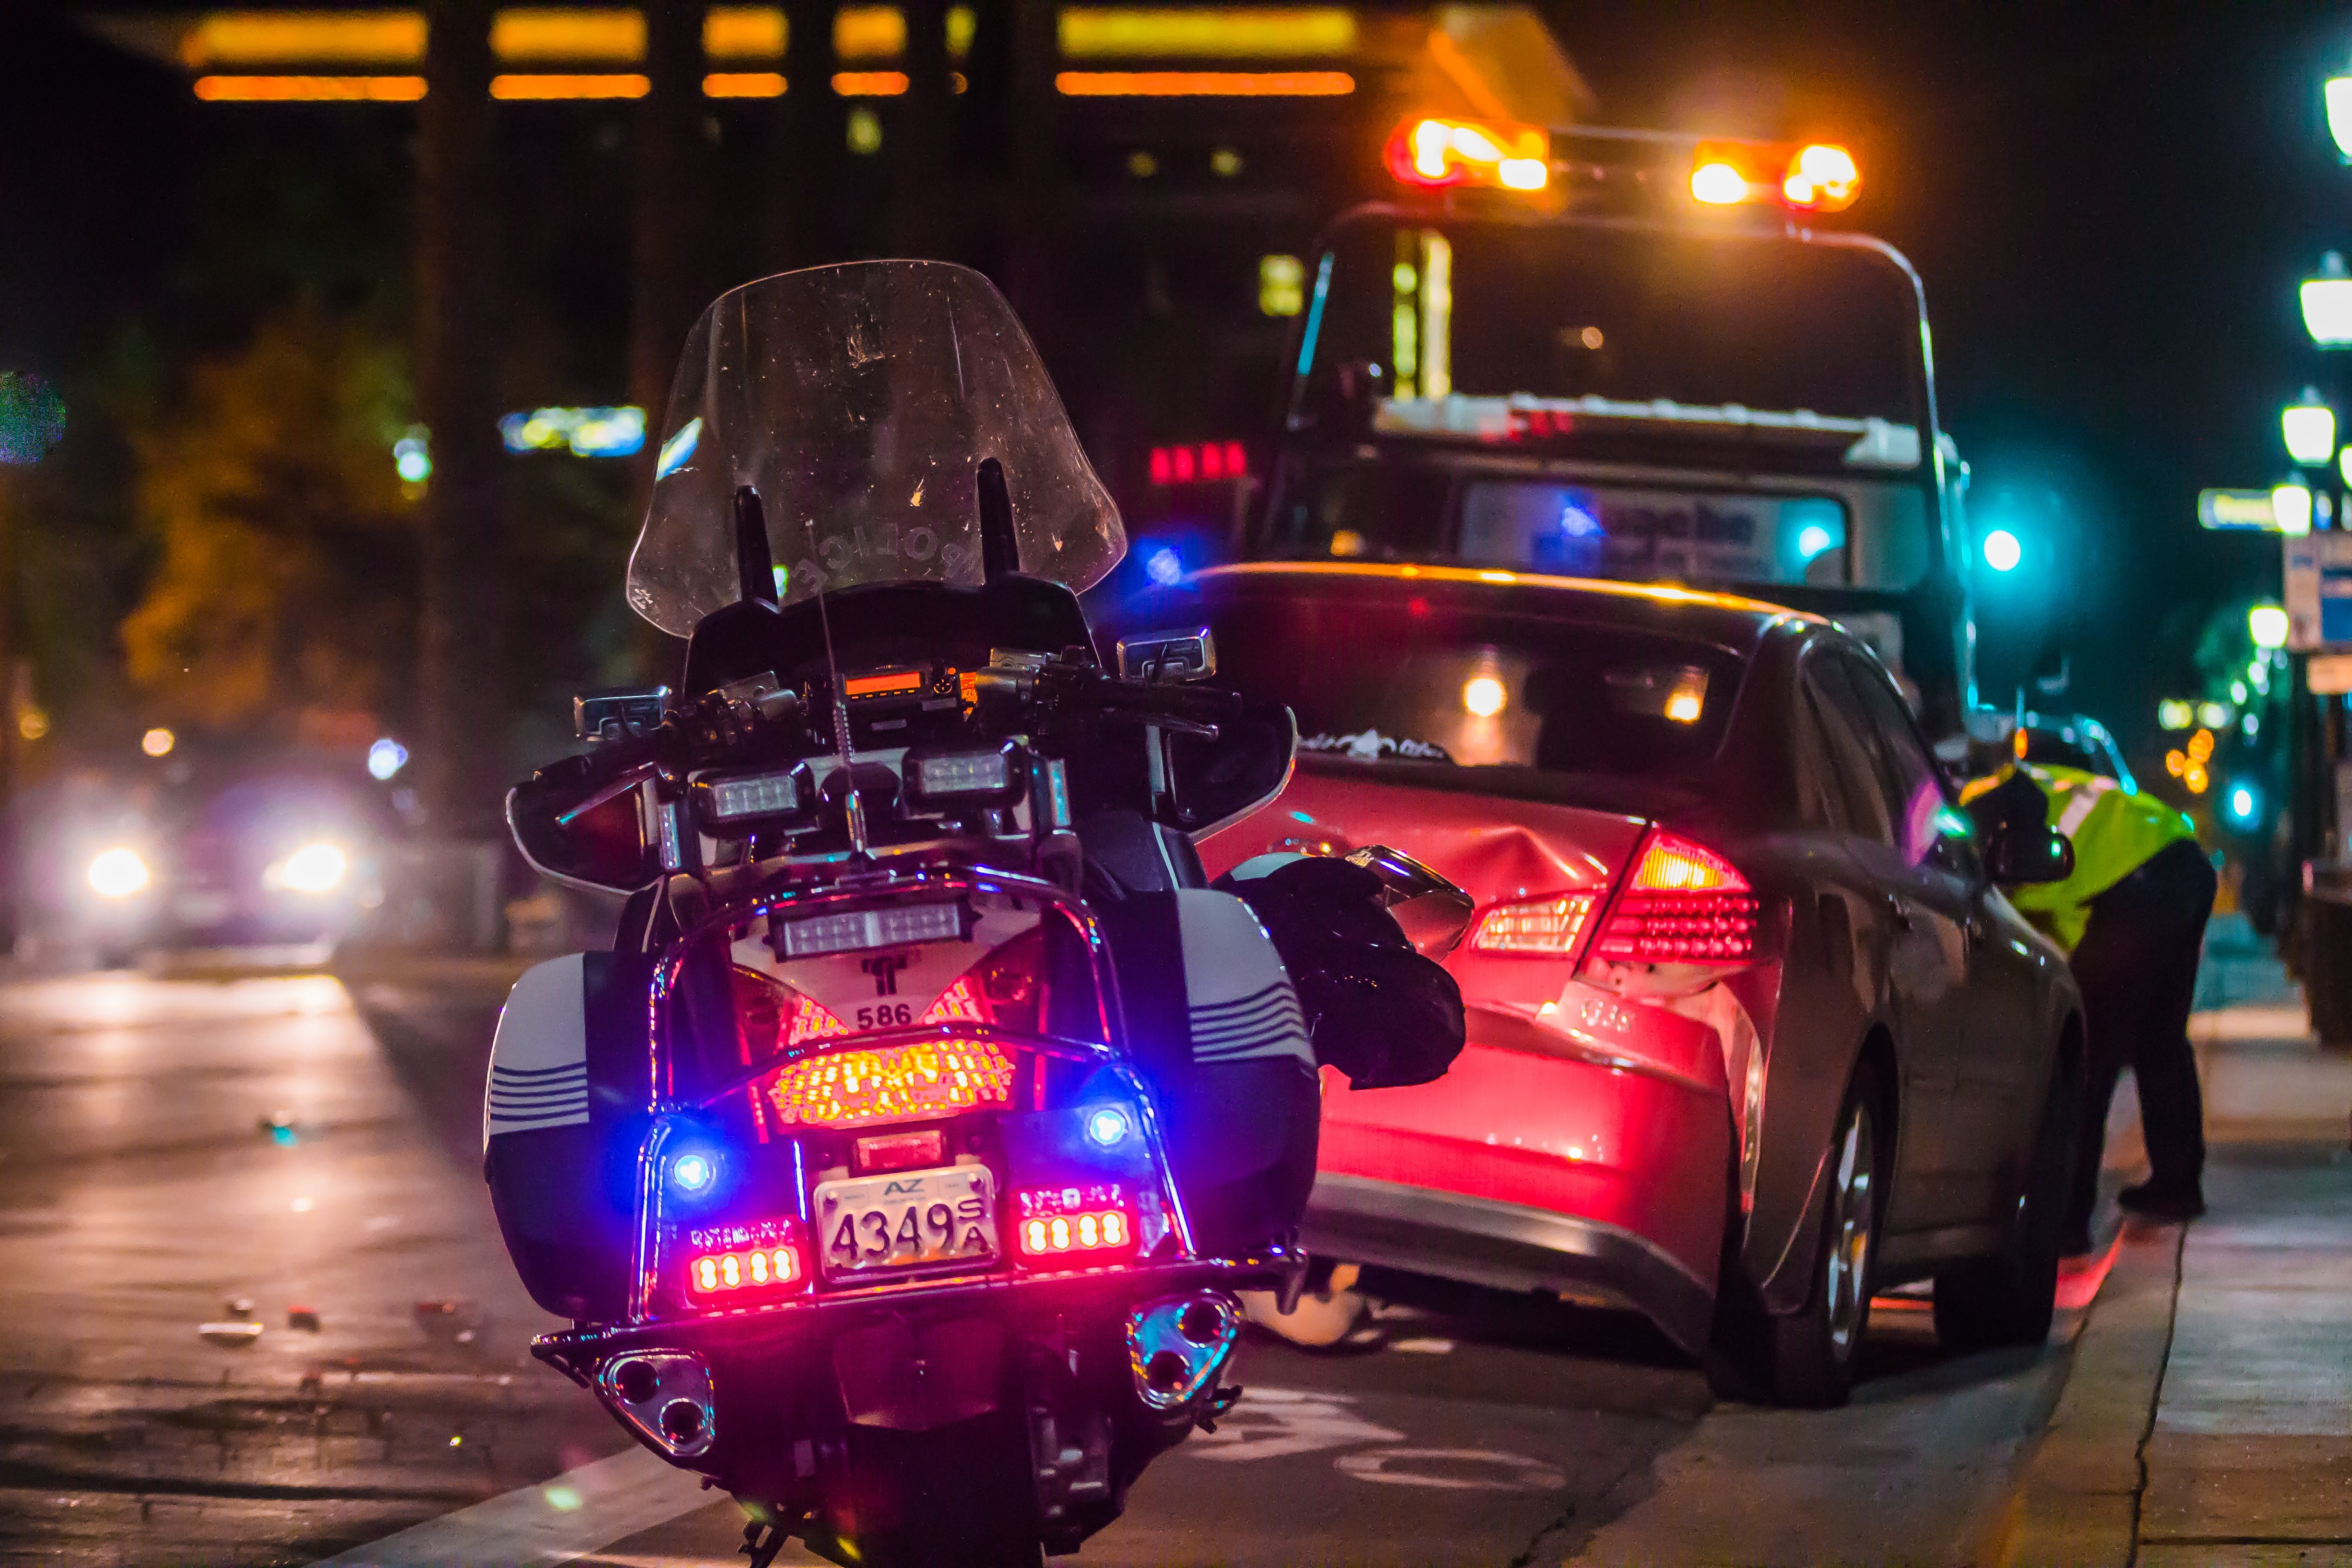 Police officer leaning in window of car after accident; image by Matt Chesin, via Unsplash.com.